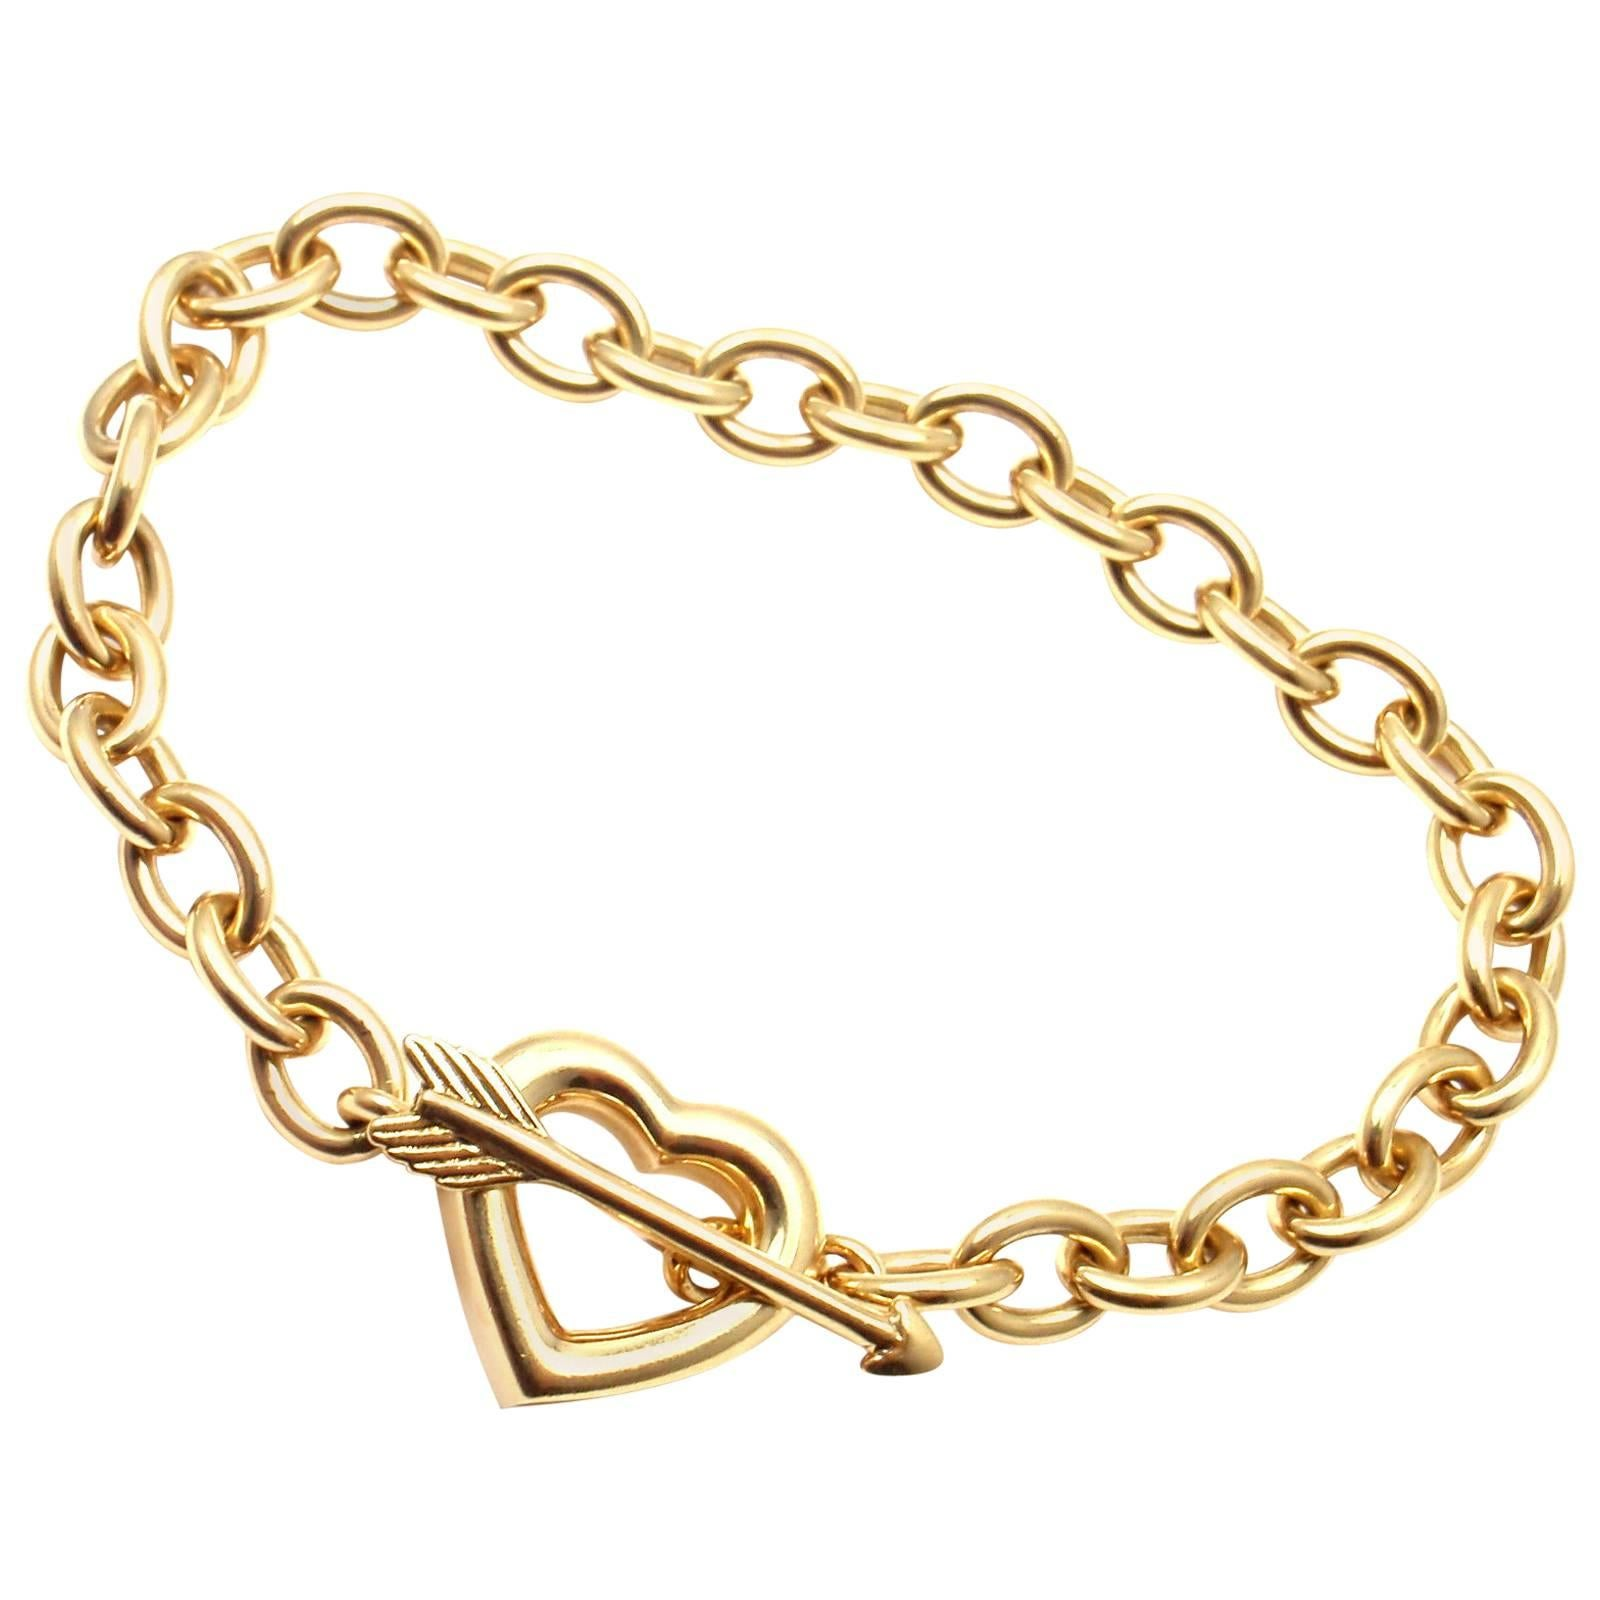 a2c1f5d10 Tiffany and Co. Heart And Arrow Link Toggle Gold Bracelet For Sale at  1stdibs